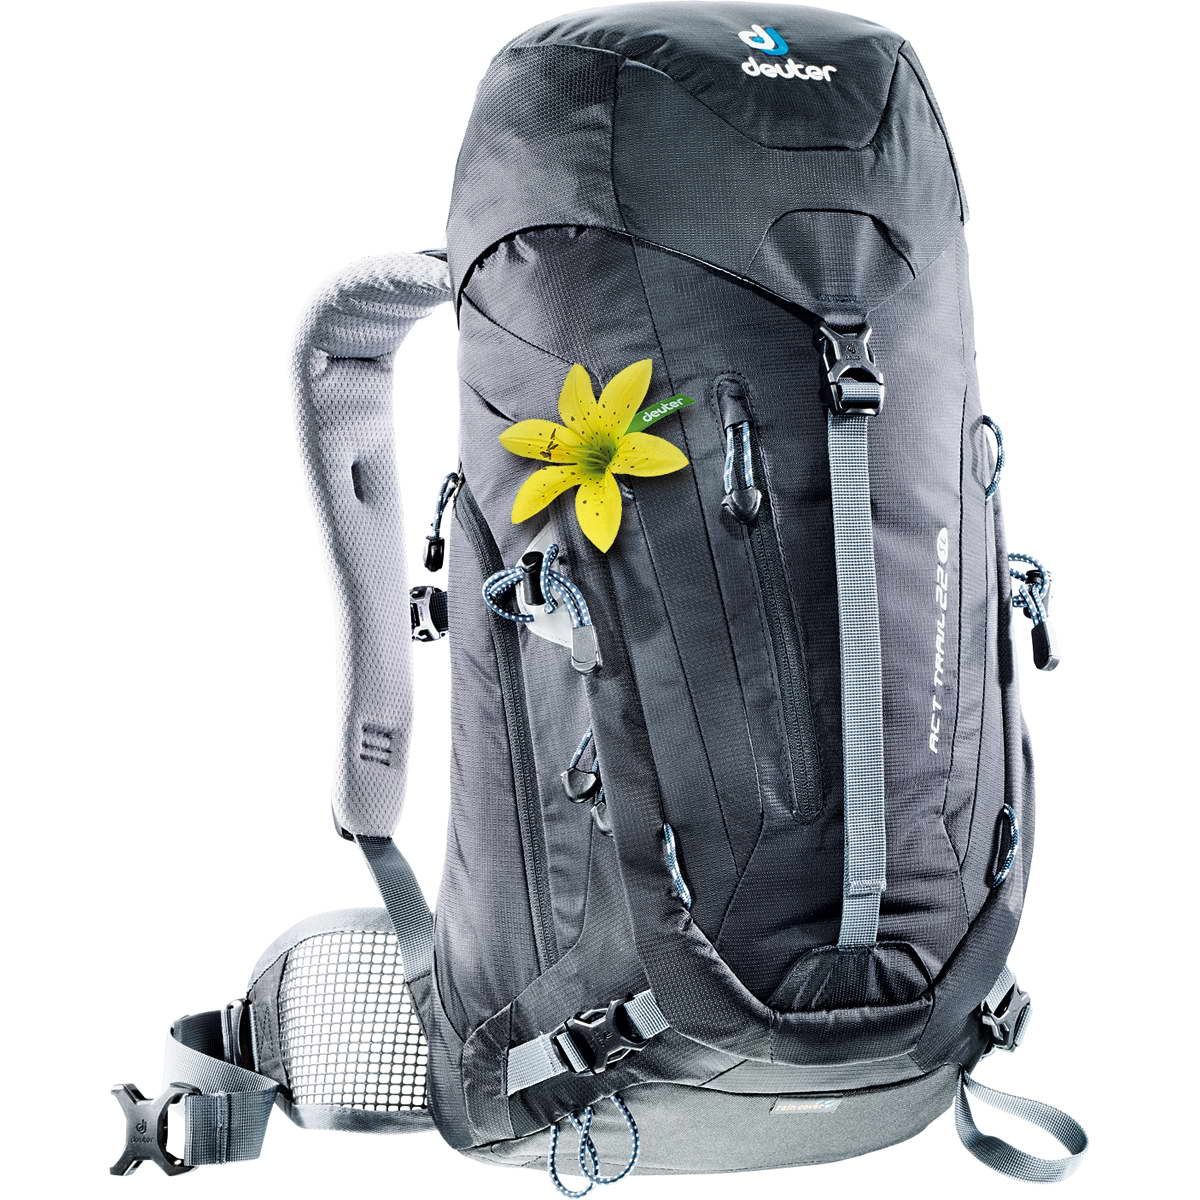 "Wanderrucksack ""Act trail"" von Deuter, Foto © outdoortrends.de"